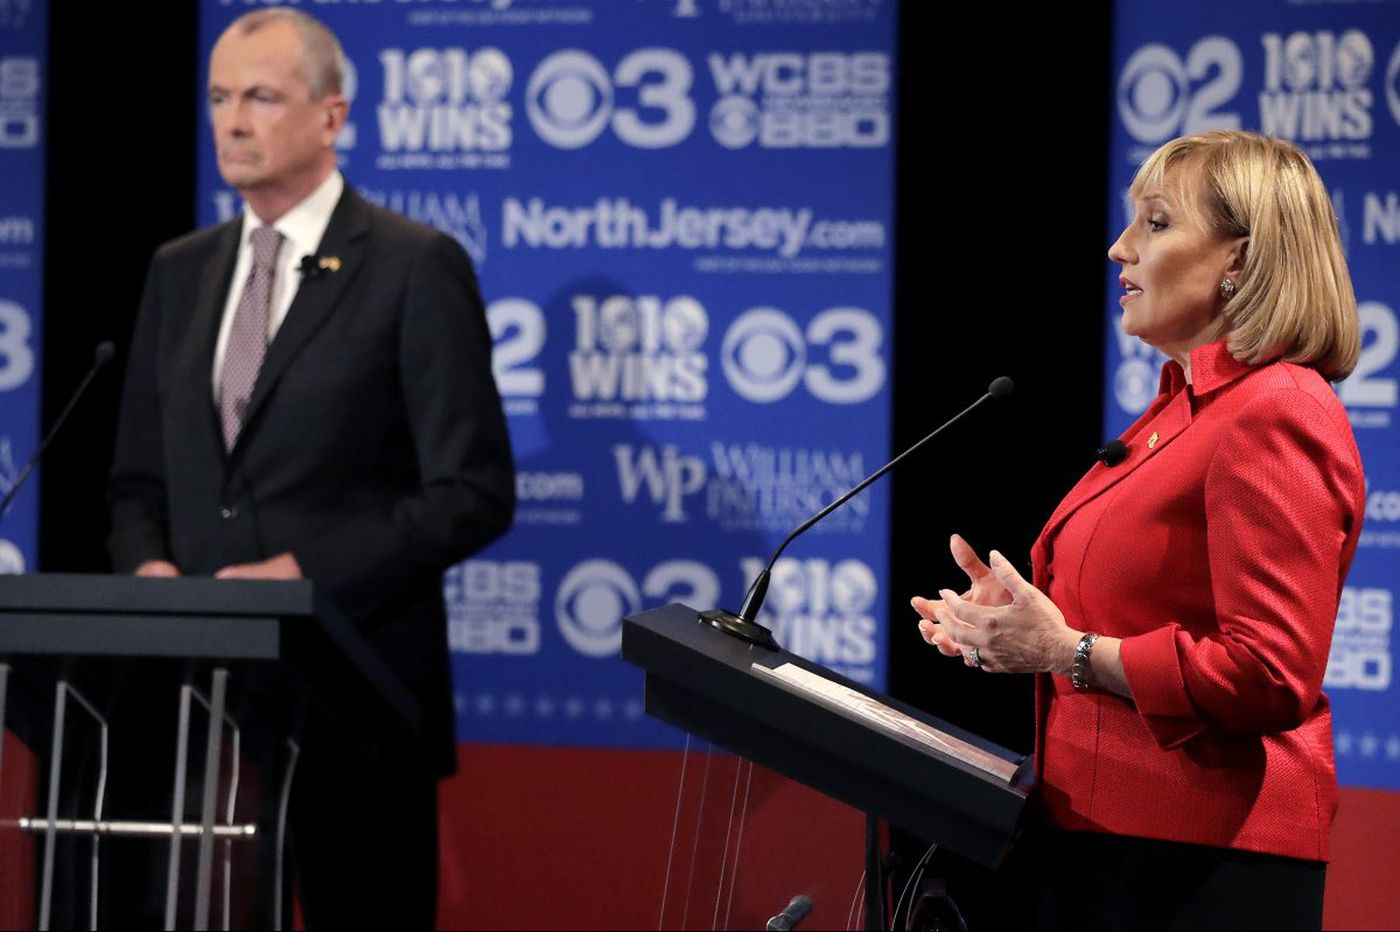 Looking for your local candidates' stand on issues in New Jersey? Good luck with that